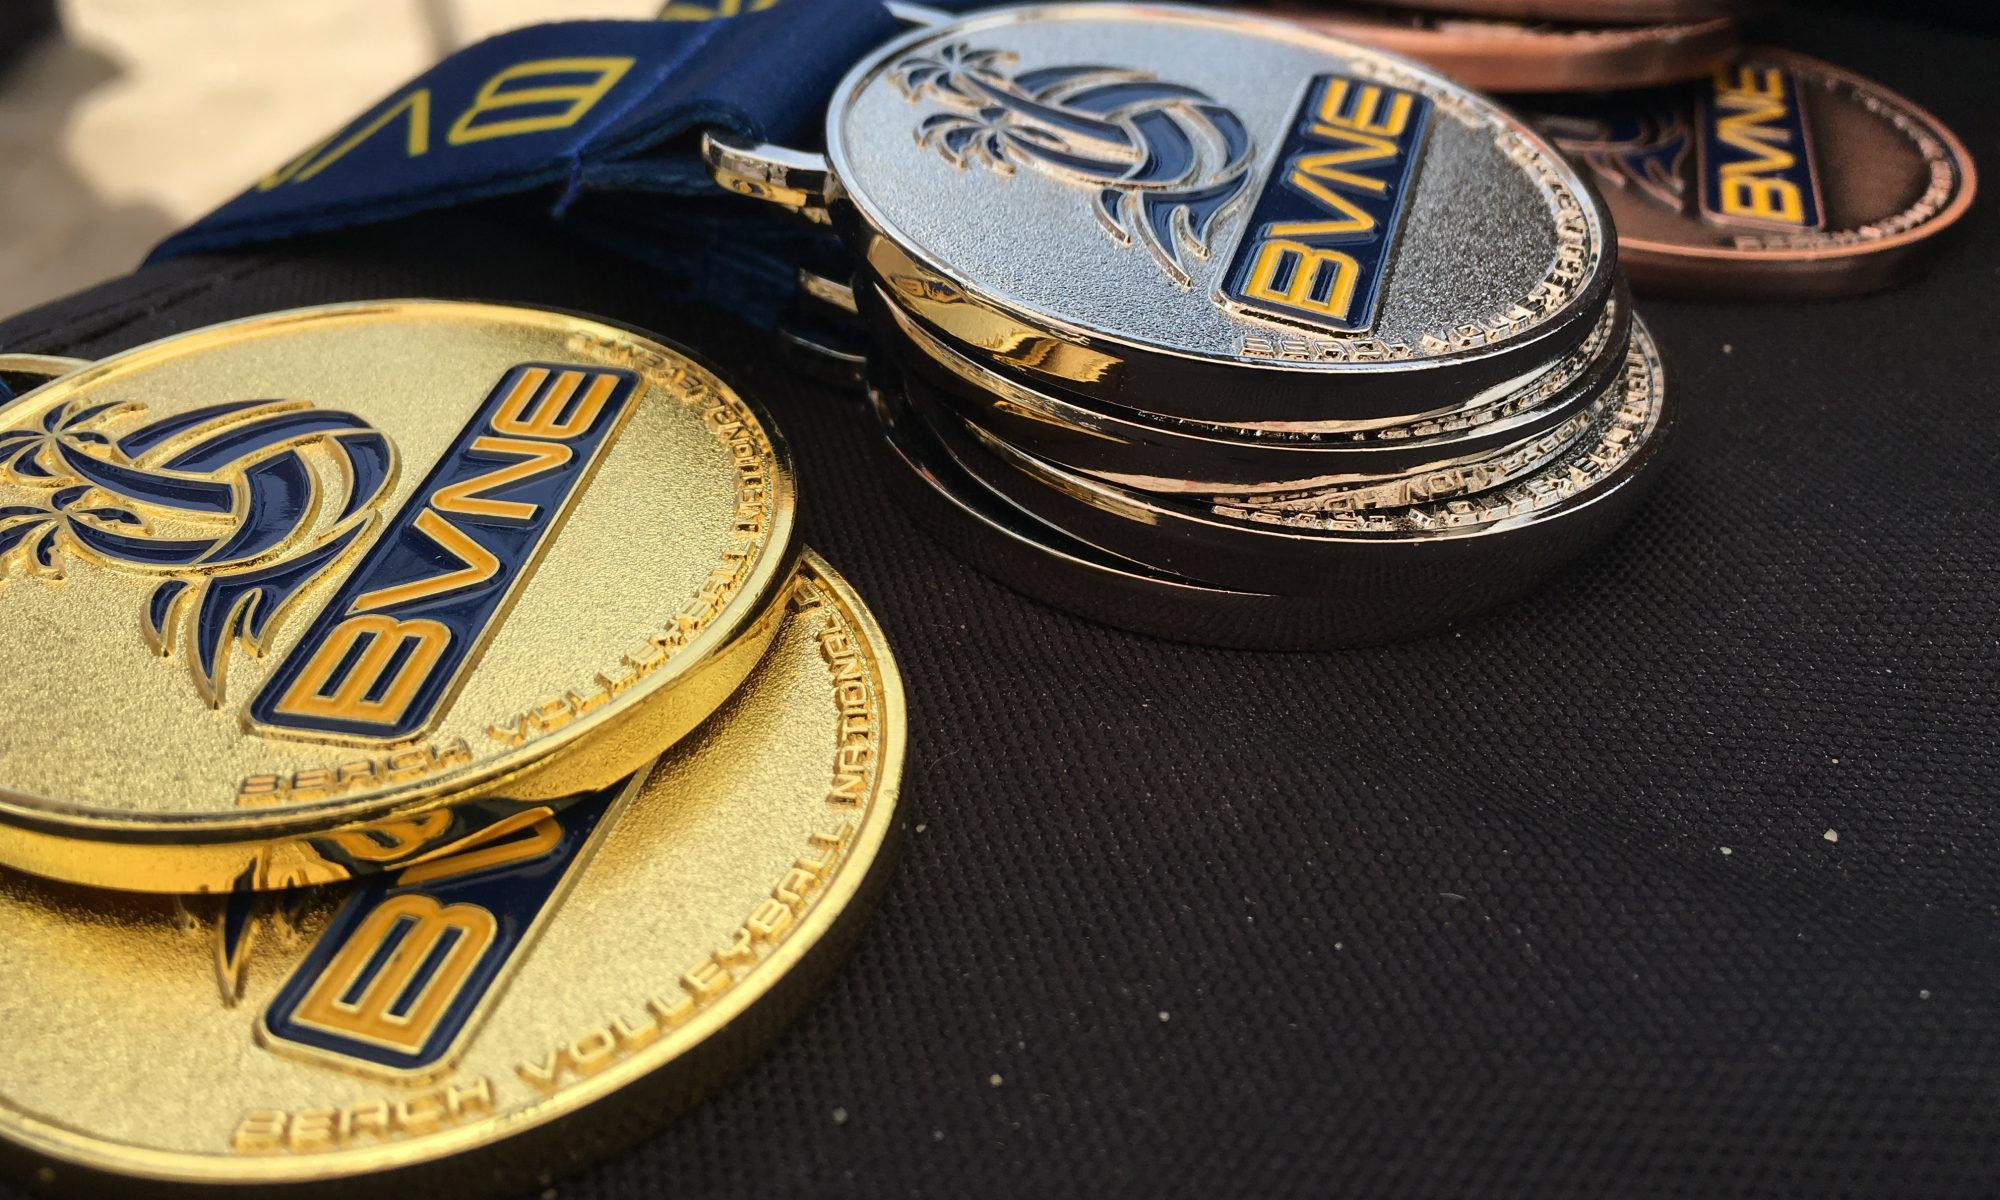 BVNE_Medals_side-copy